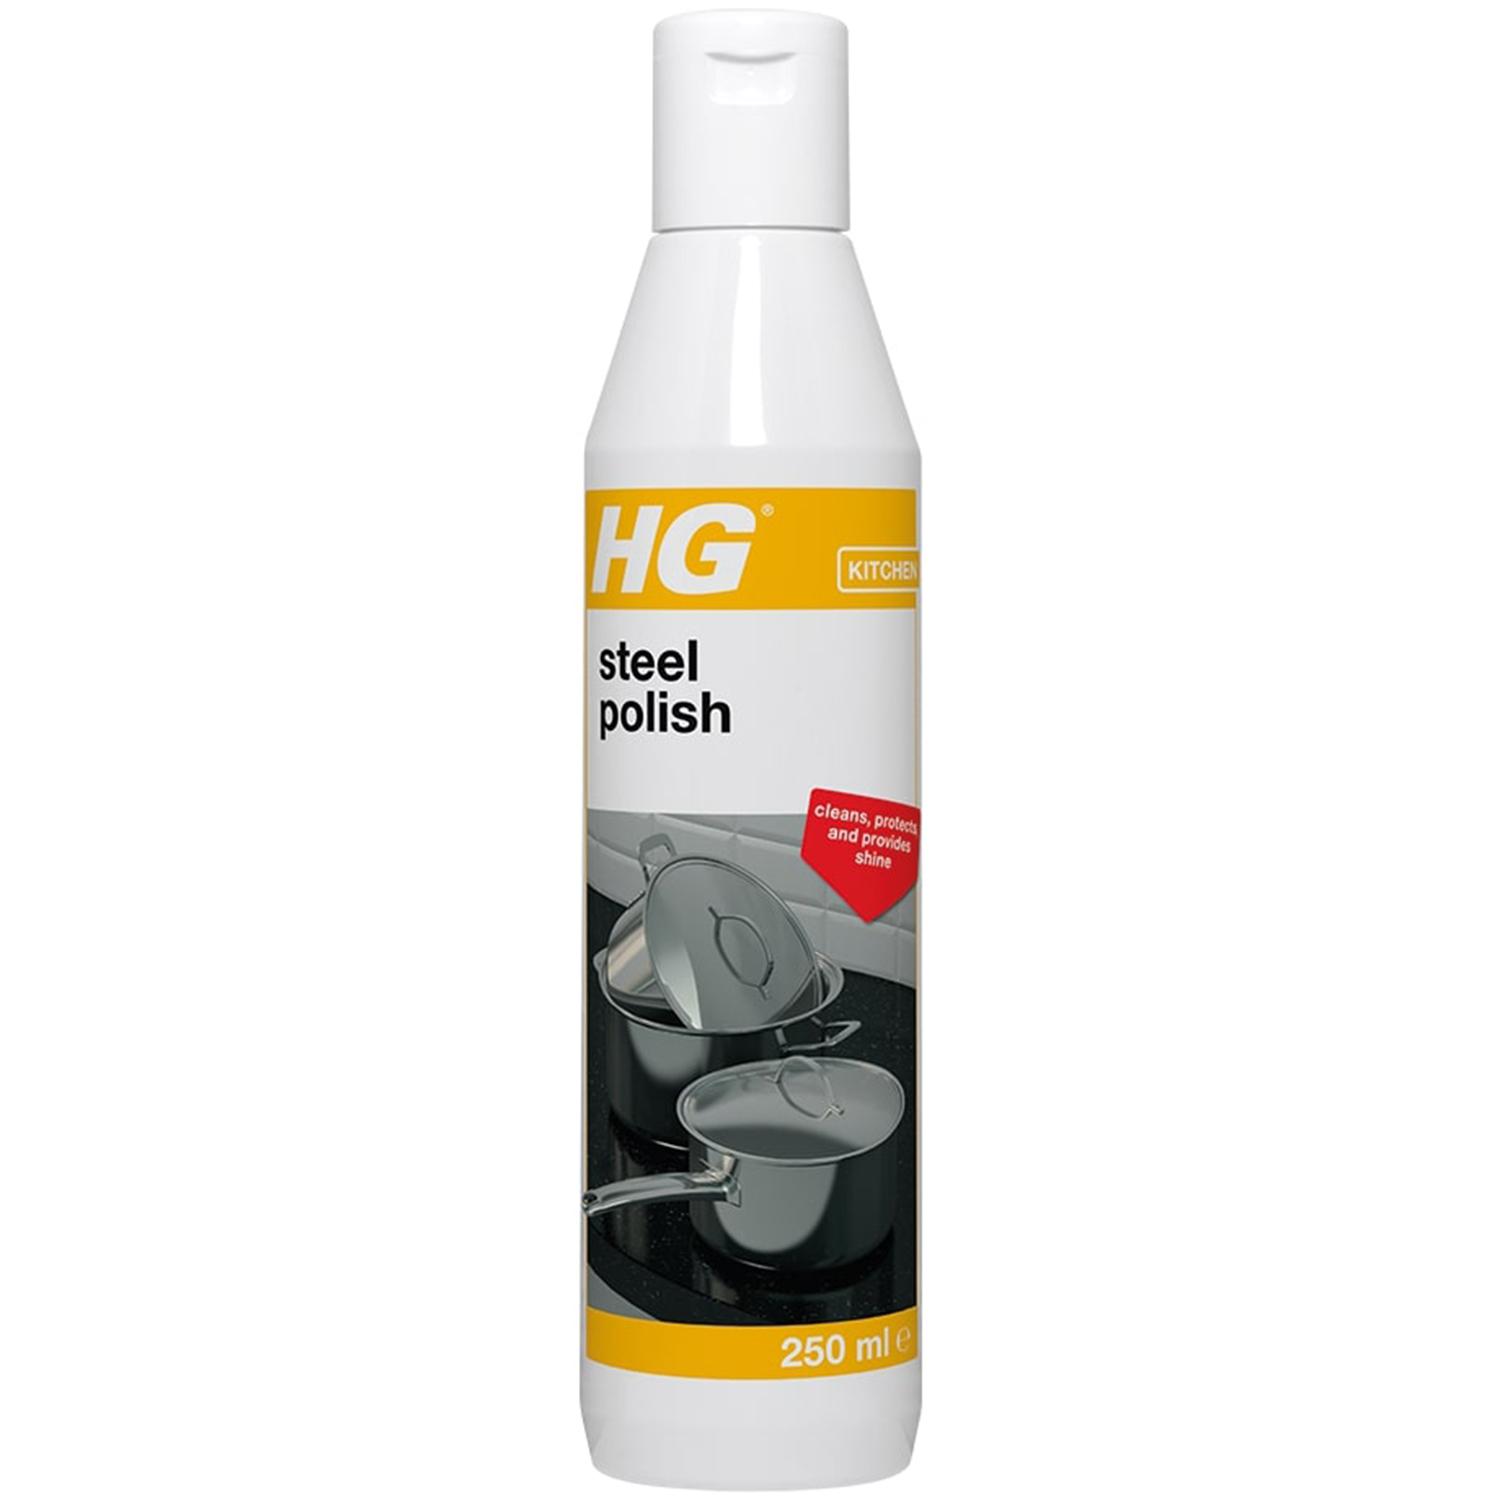 HG Steel Polish 250ml